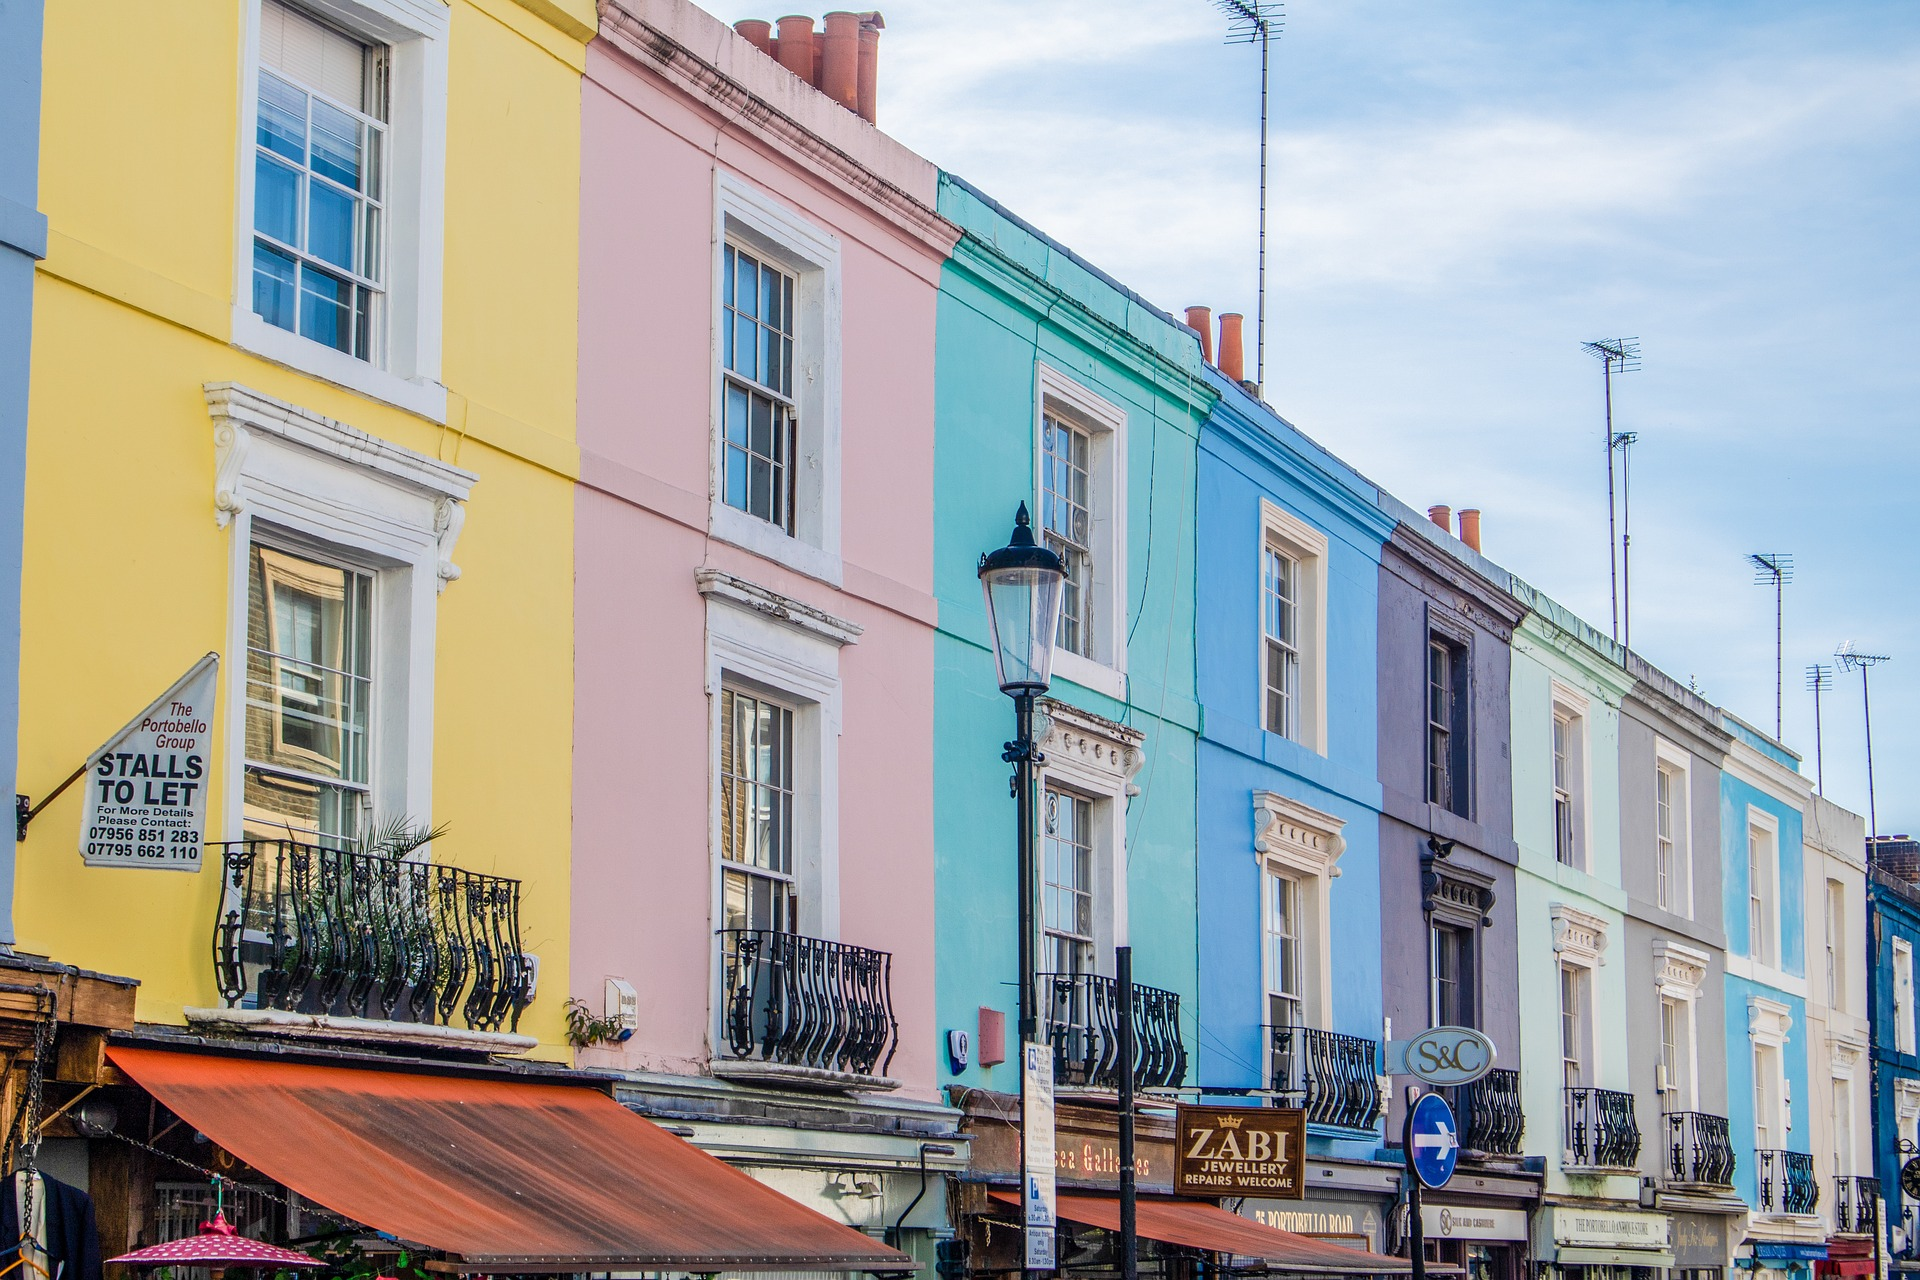 Moving To West London: A Guide To The Best Local Businesses